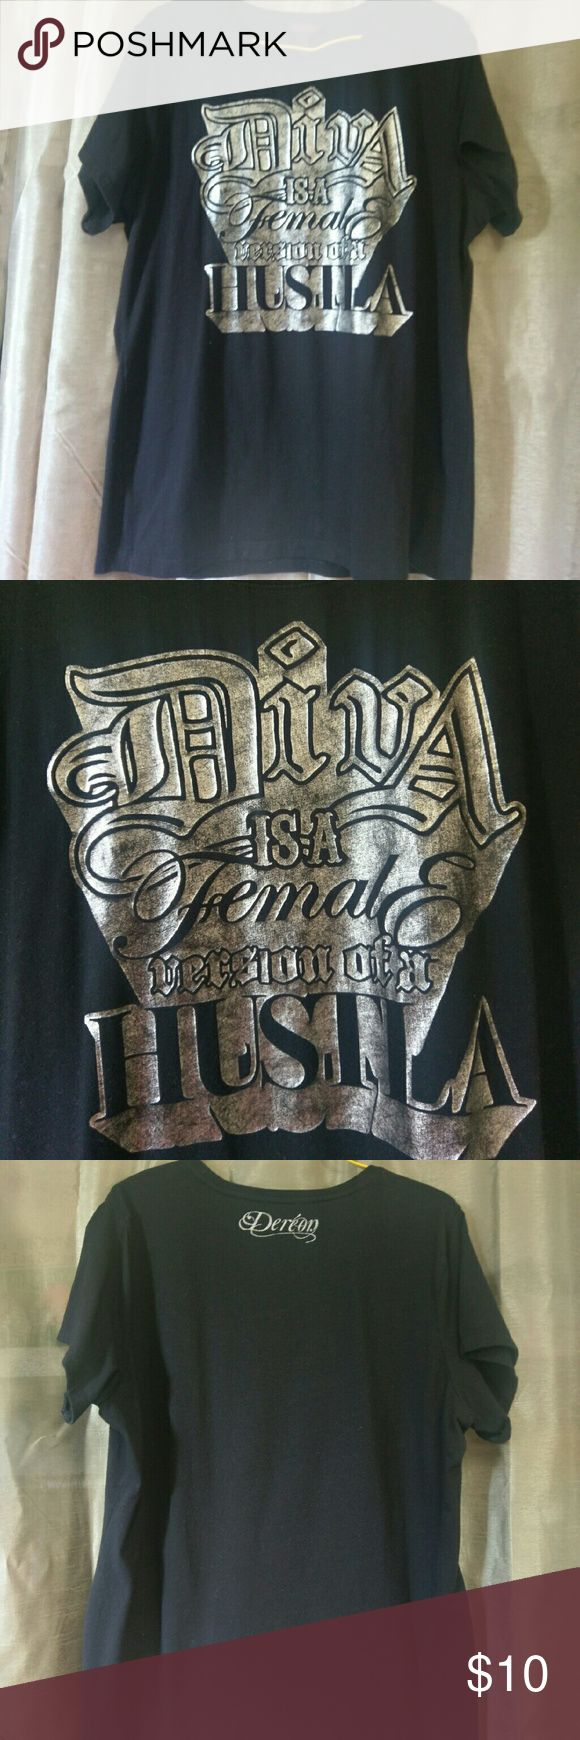 Dereon Tee - Diva is Female Version of a Hustla Beyonce's clothing line featuring her famous lyrics. Soft, with stretch.  Excellent used condition.  Size 1X (XL) Dereon Tops Tees - Short Sleeve